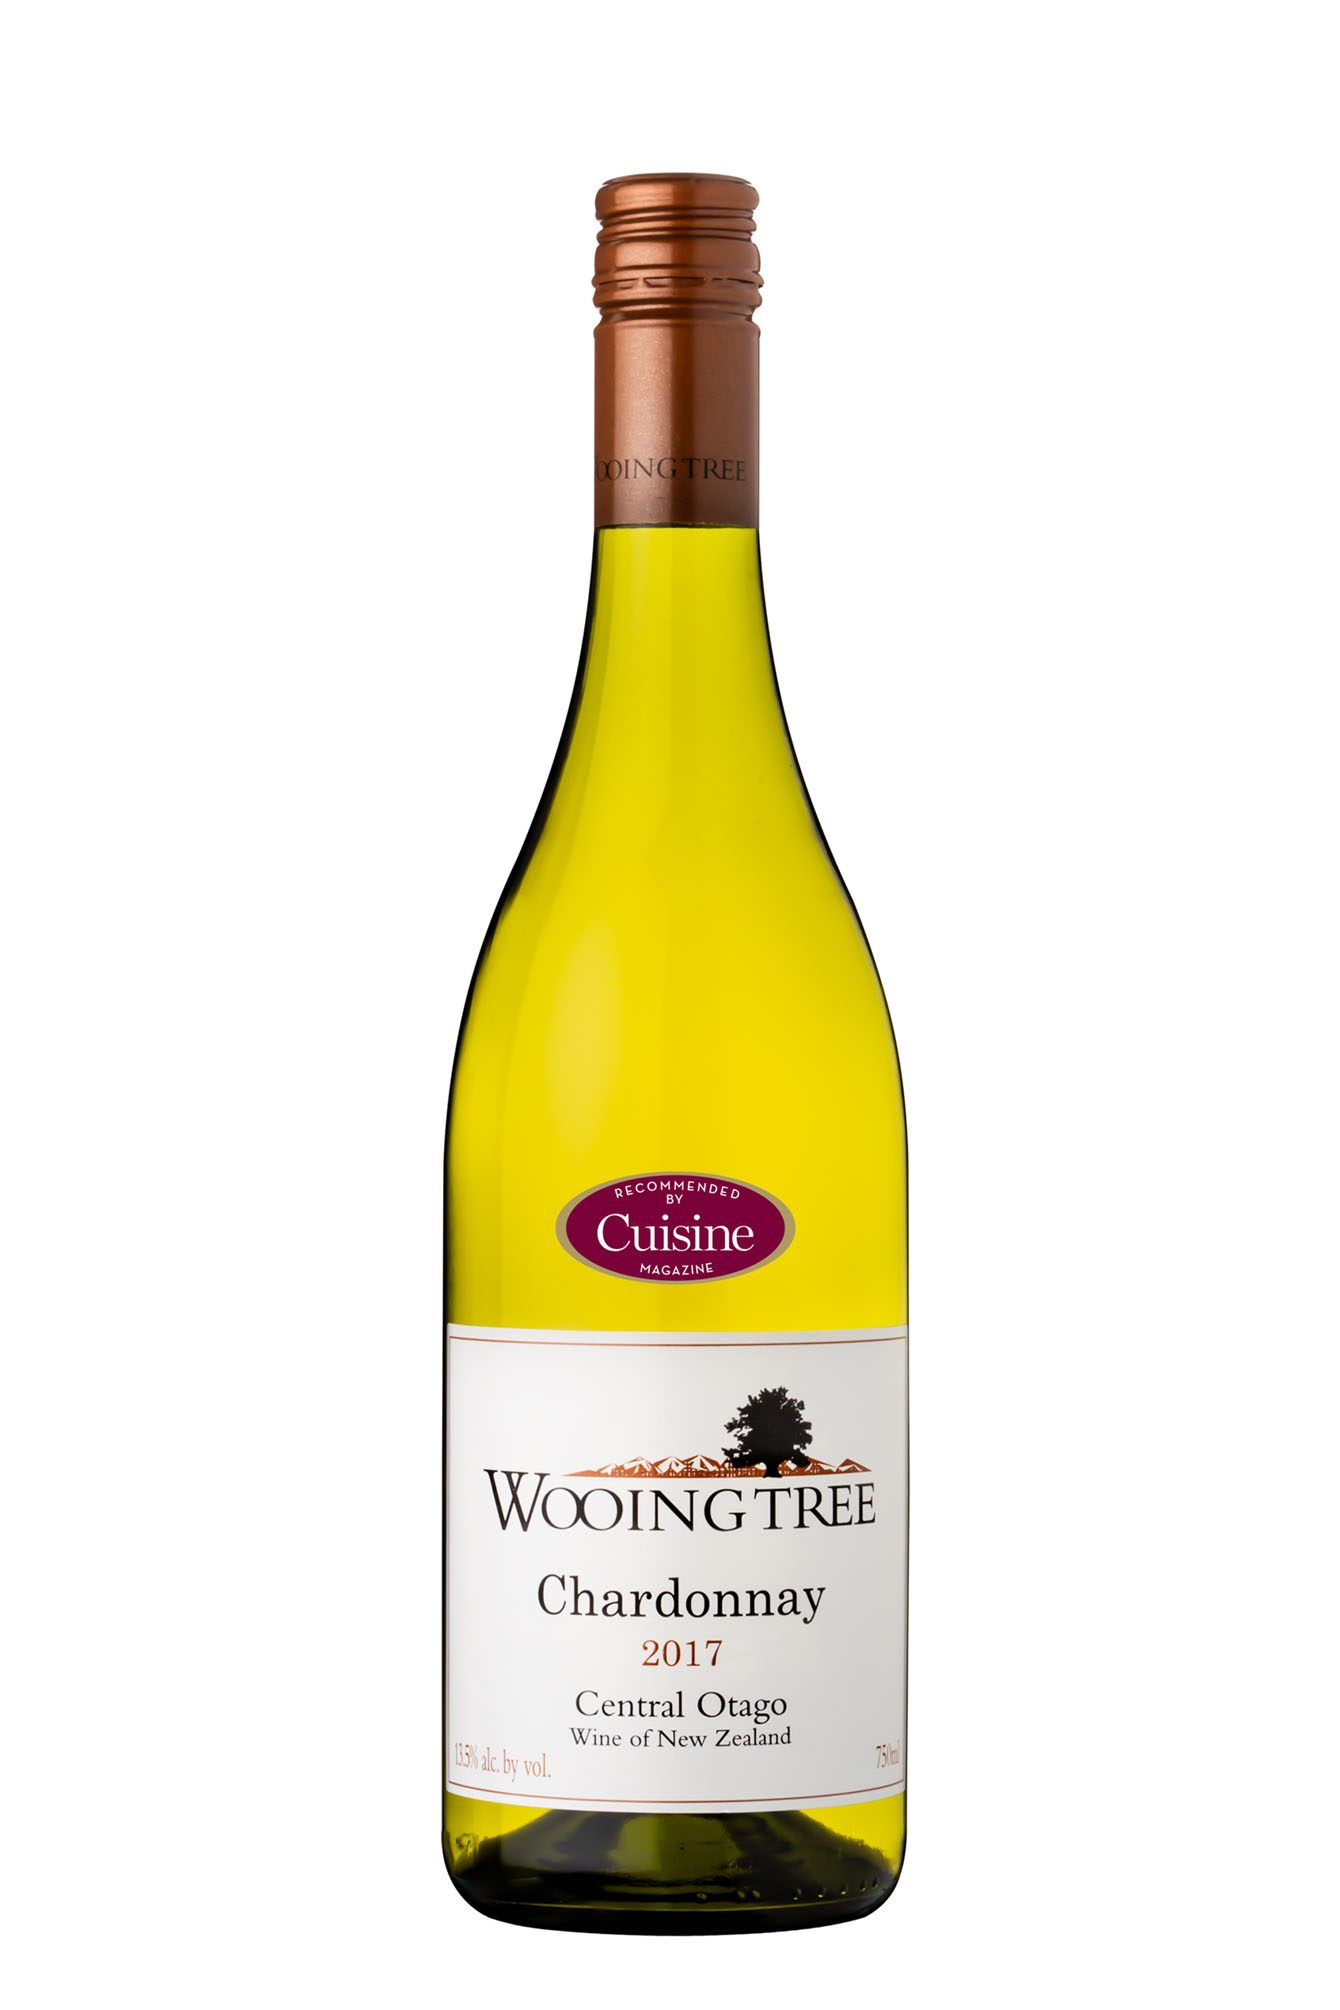 Wooing Tree Chardonnay 2017 (Central Otago)